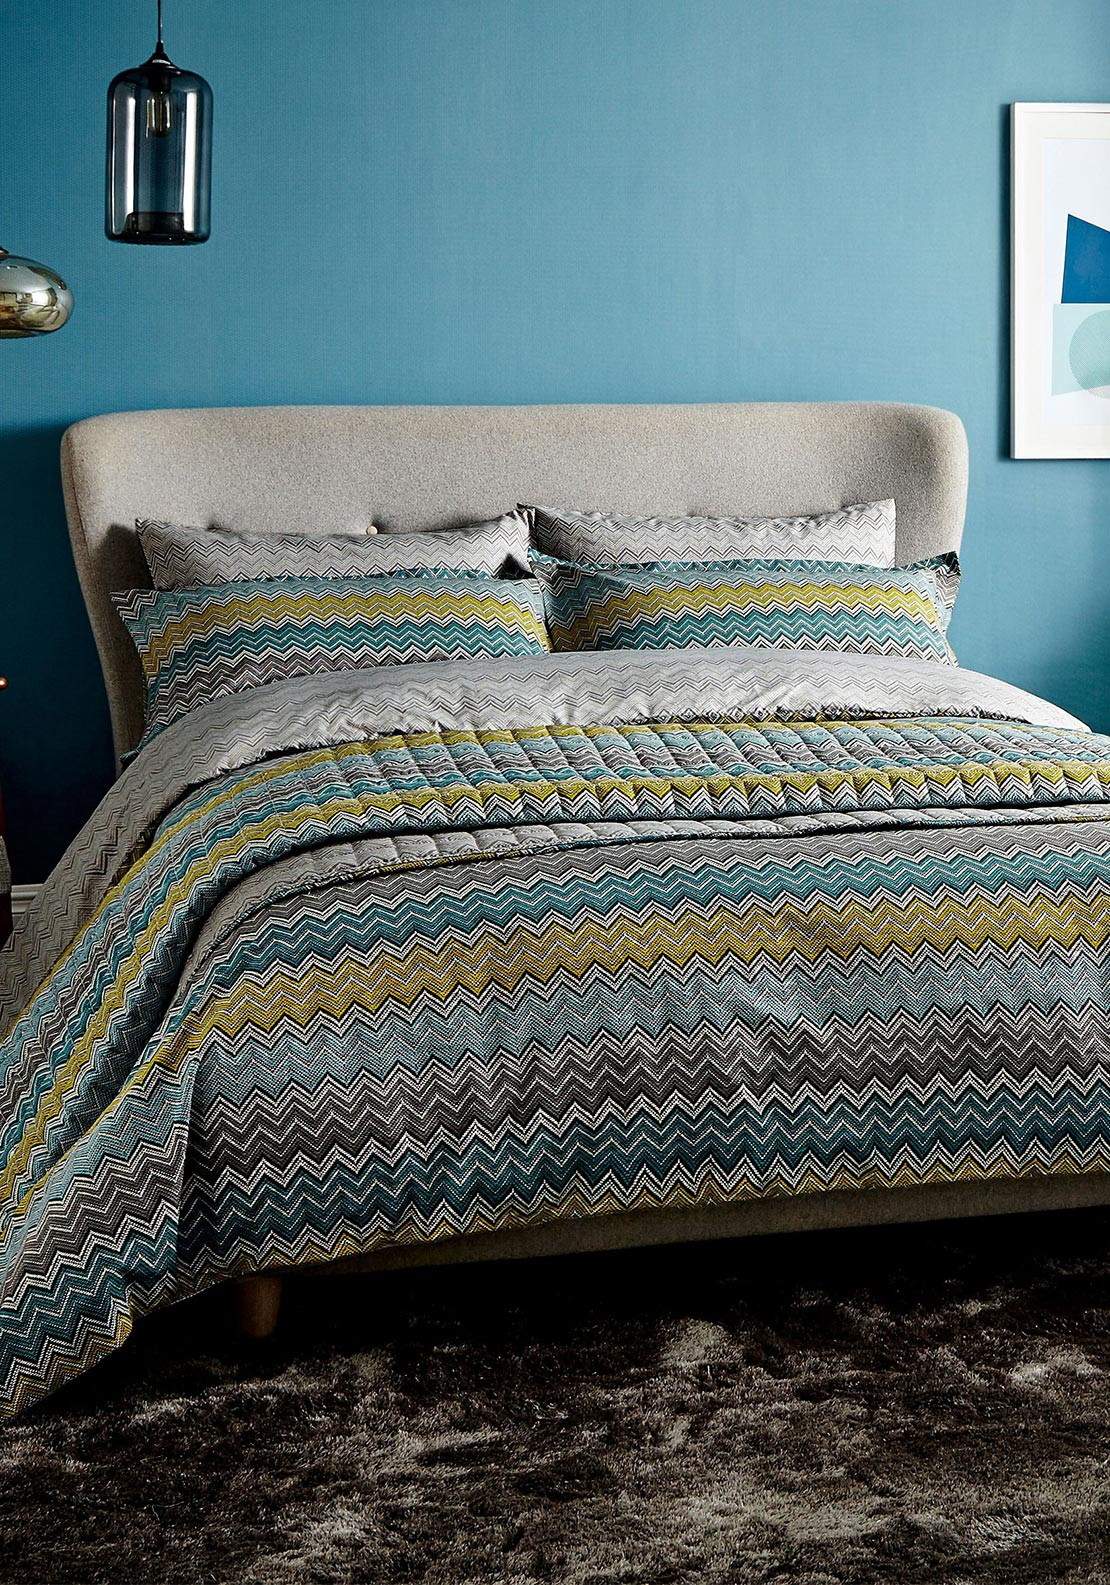 Harlequin Chevron Zig Zag Duvet Cover Set, Blue